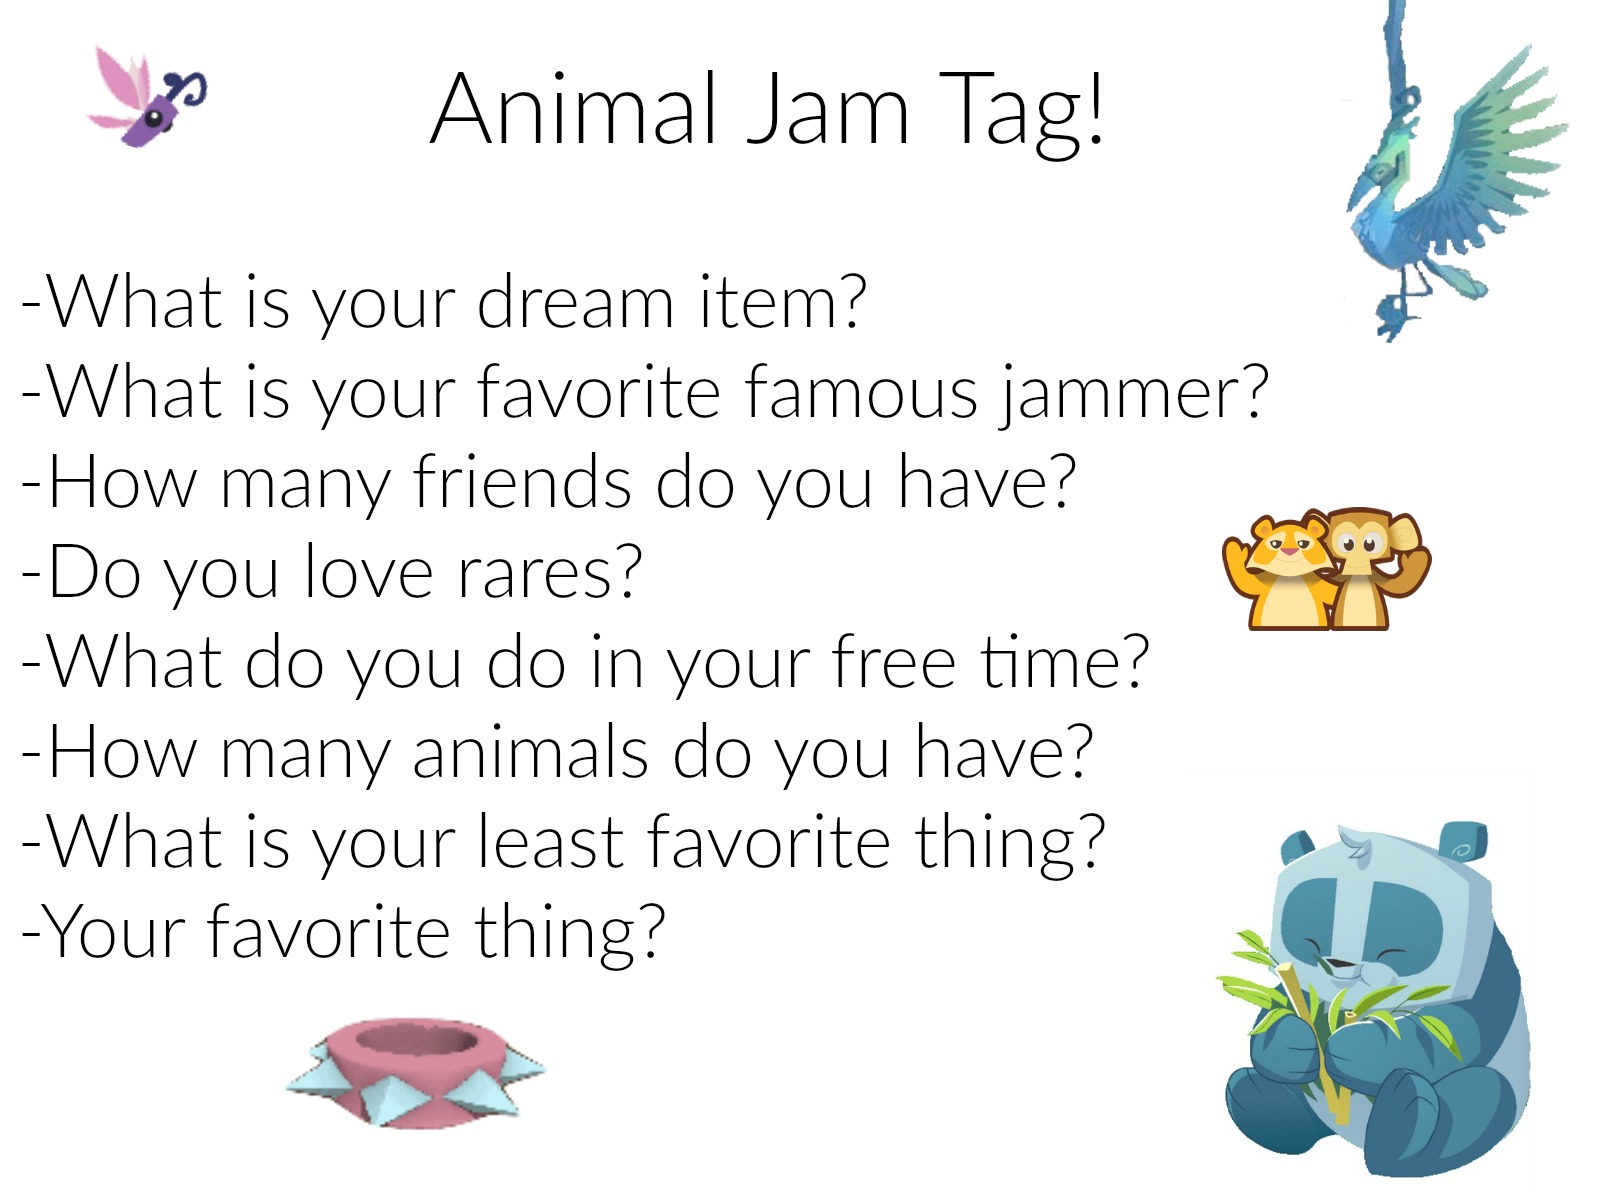 animal jam comet lostfairy s animal jam tag what is your dream item my dream item used to be white deer fur but since then i have gotten brown deer fur and white deer fur i want phoenix wings right